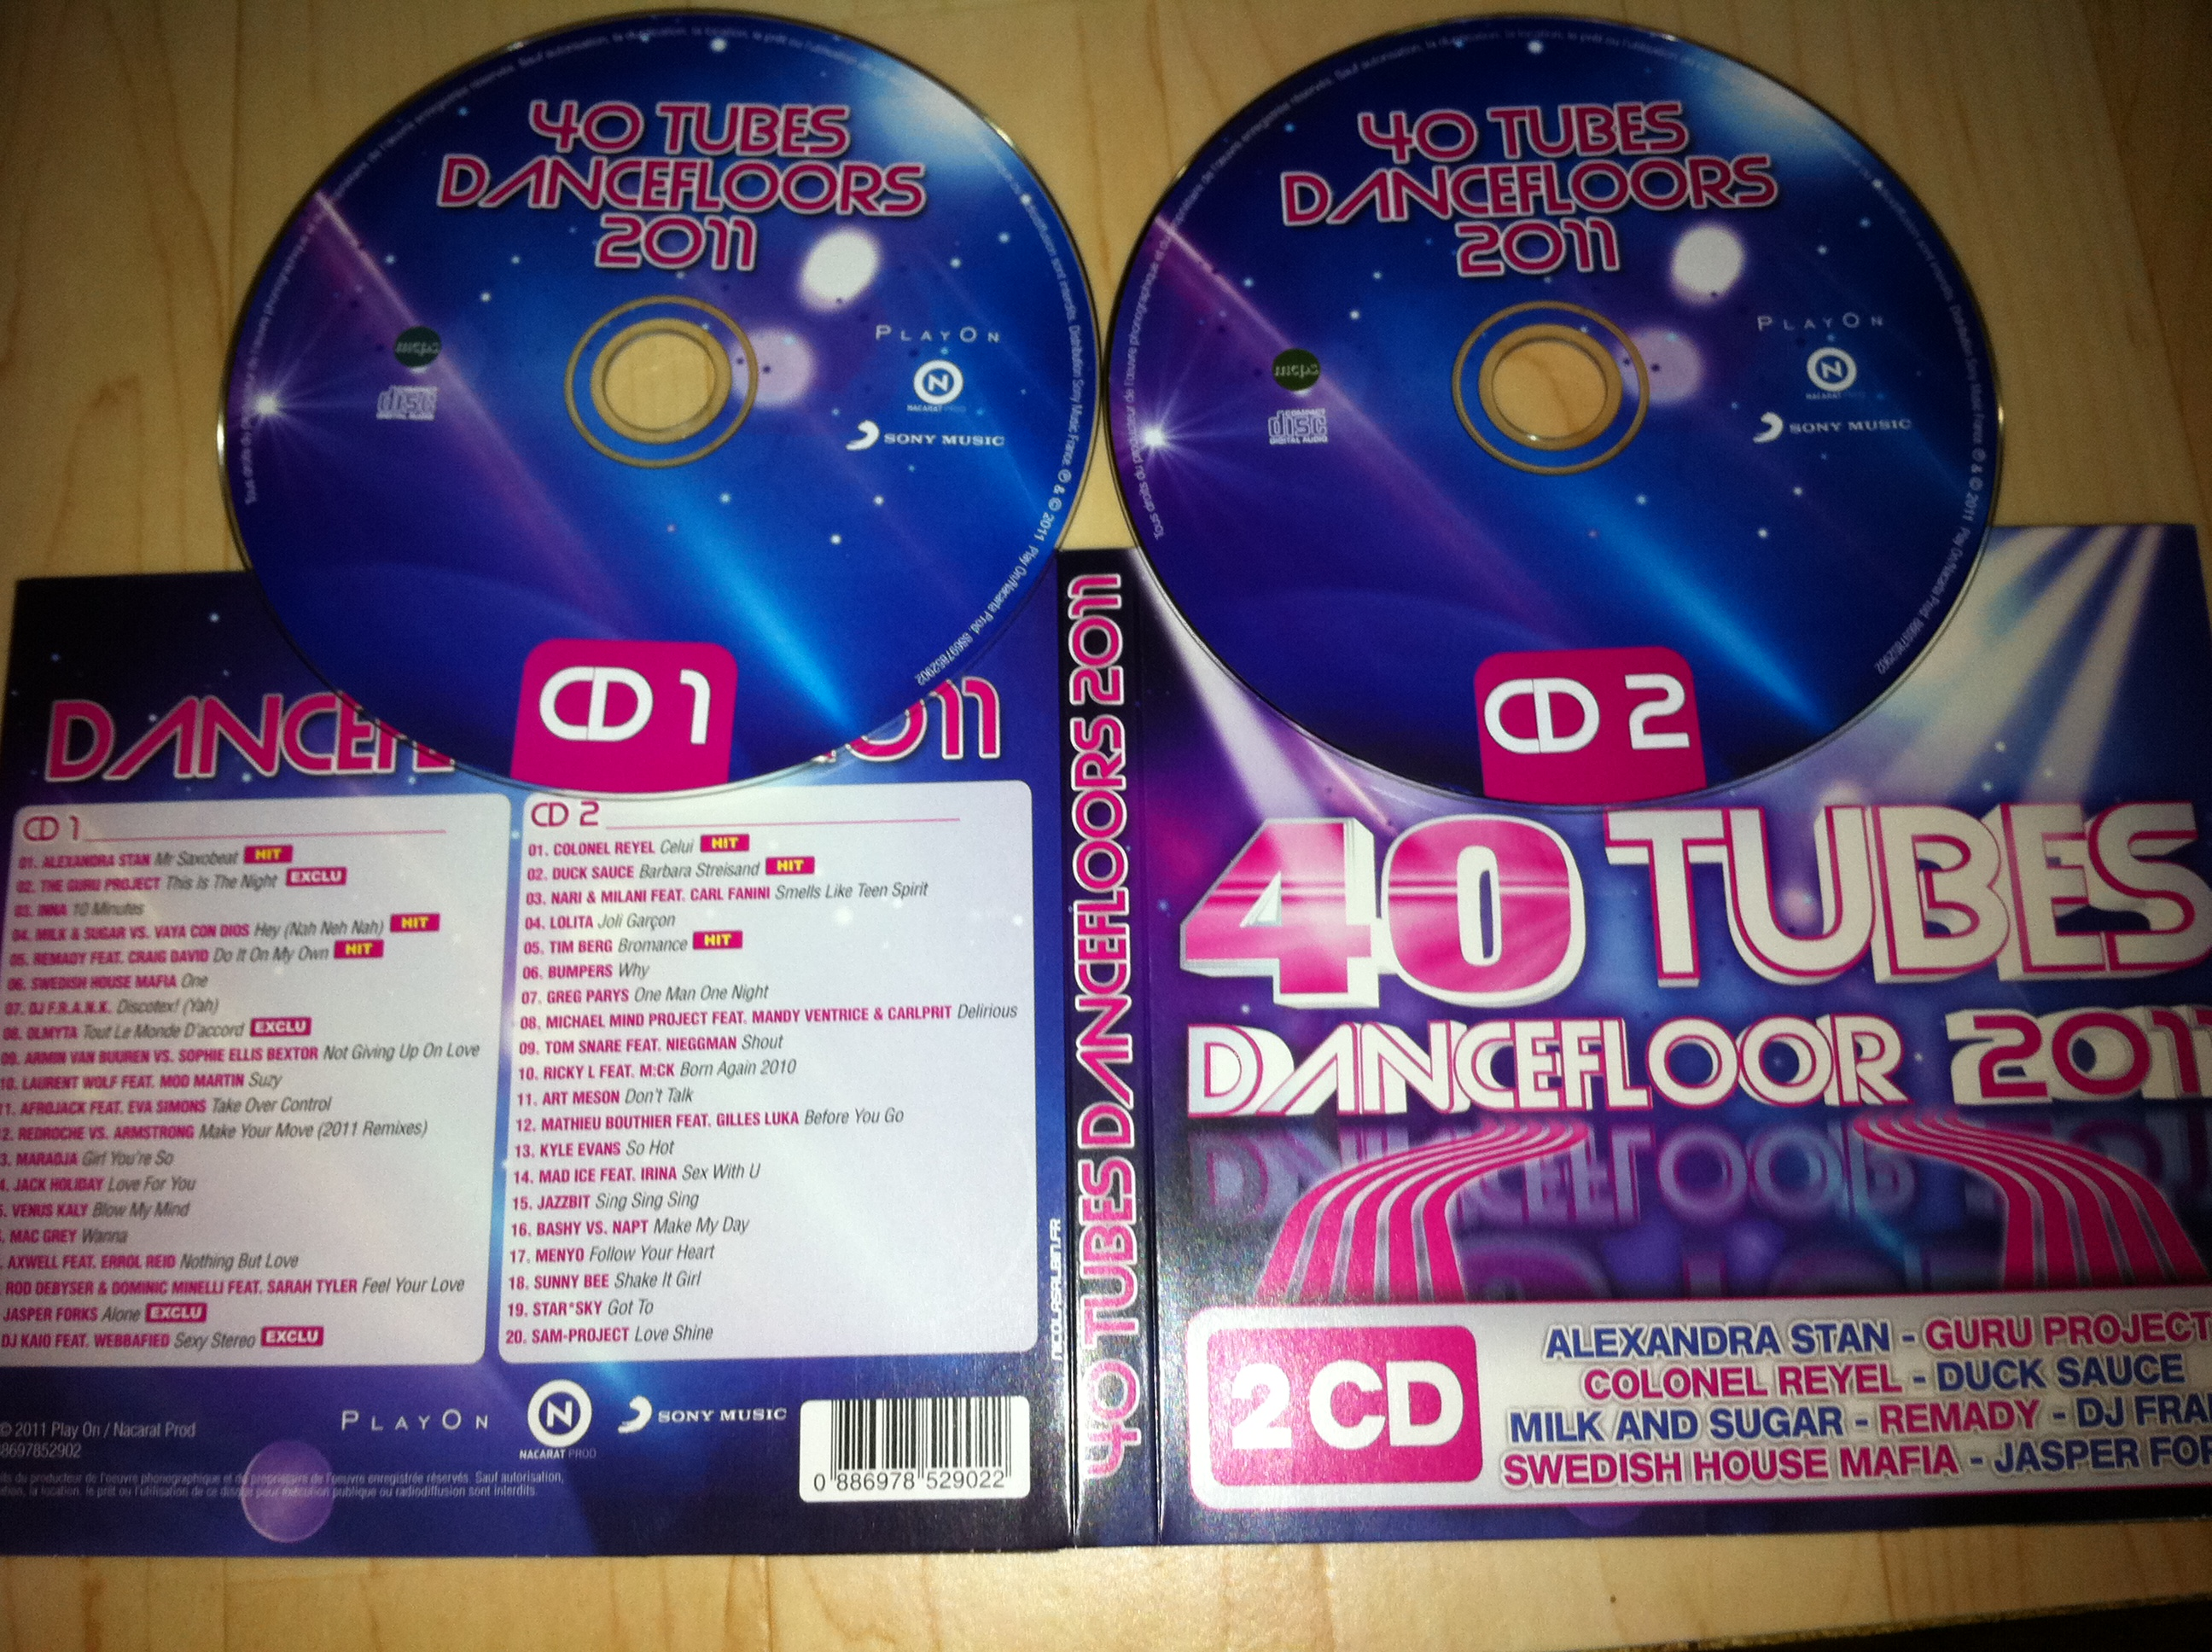 VA - 40 Tubes Dancefloor 2011 2CD 2011 (CD ORIGINAL)